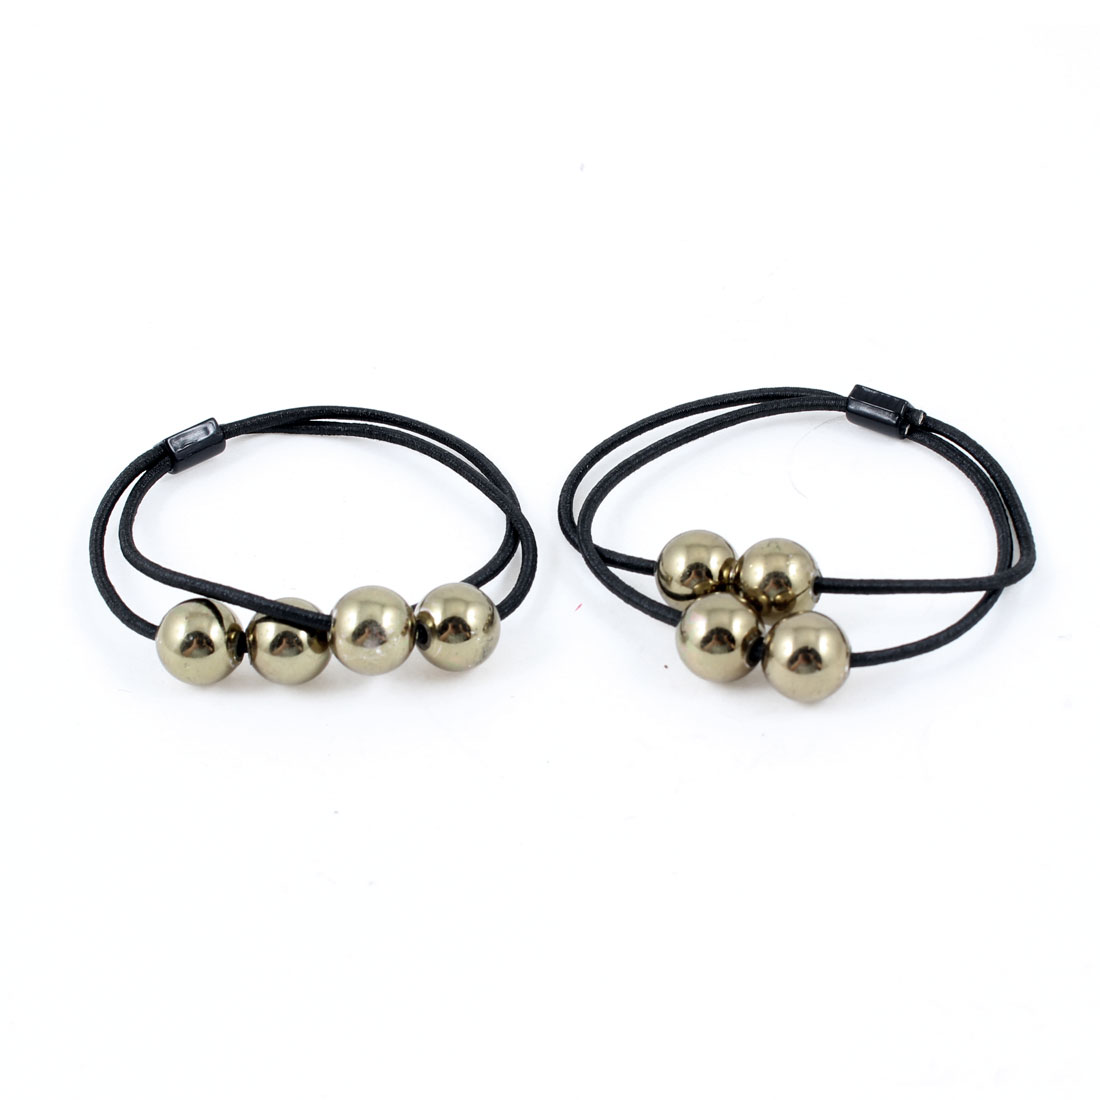 Bronze Tone Round Faux Beads Decor Black Hair Band Ponytail Holder Pair